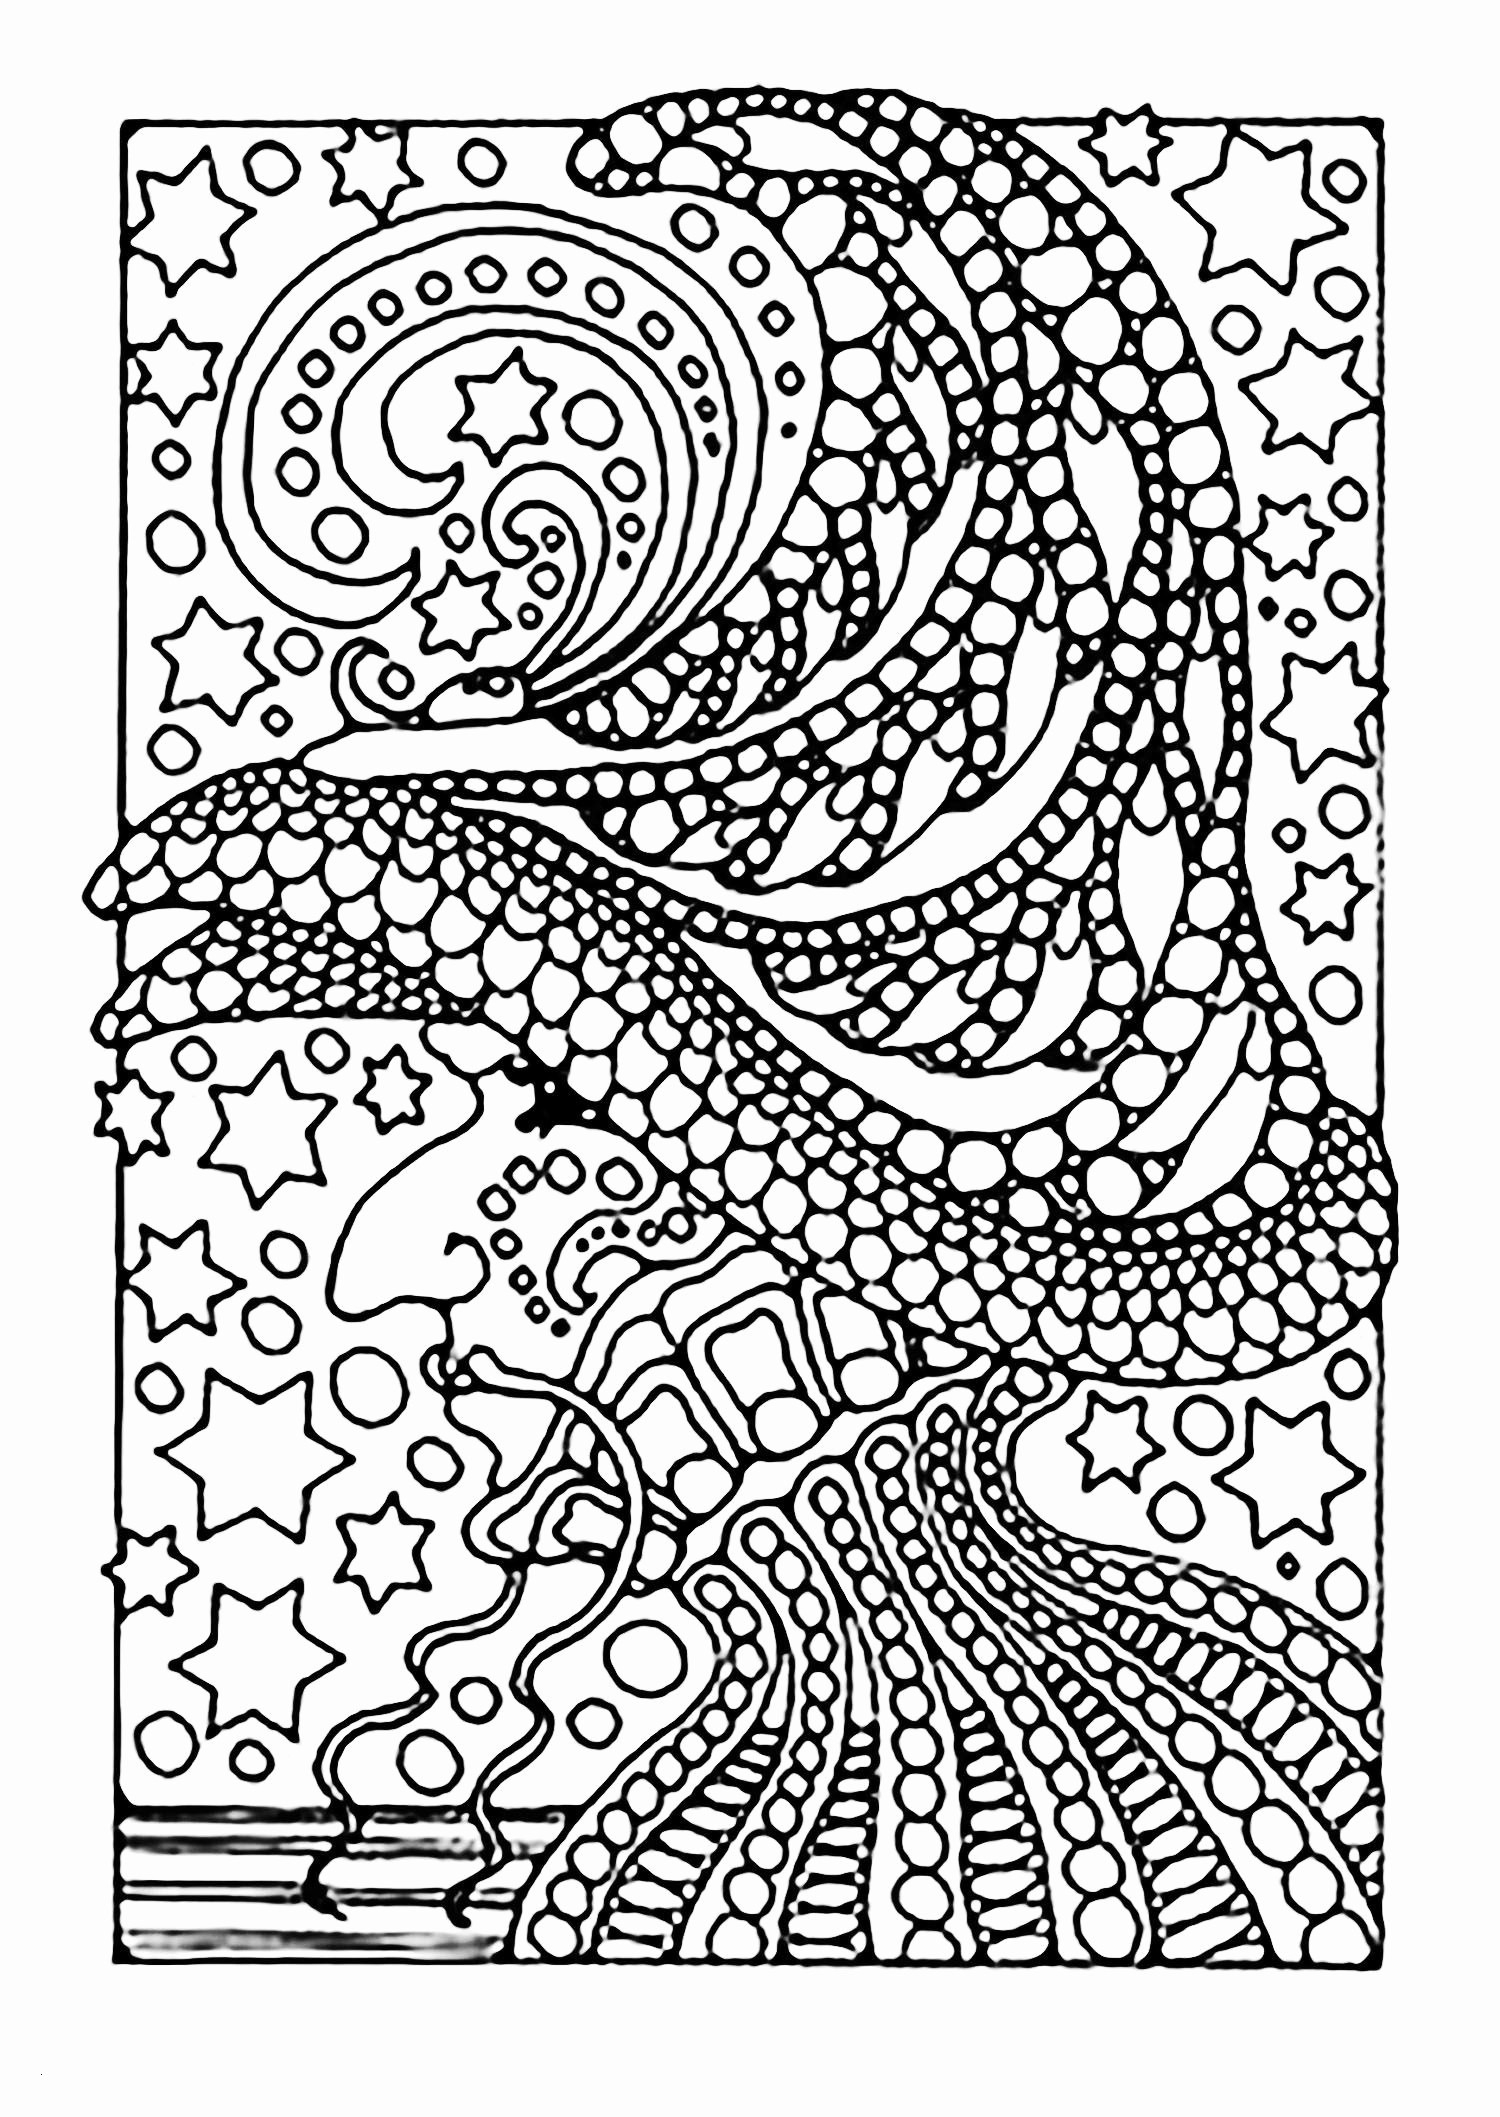 Coral Reefs Coloring Pages  Collection 13n - Save it to your computer